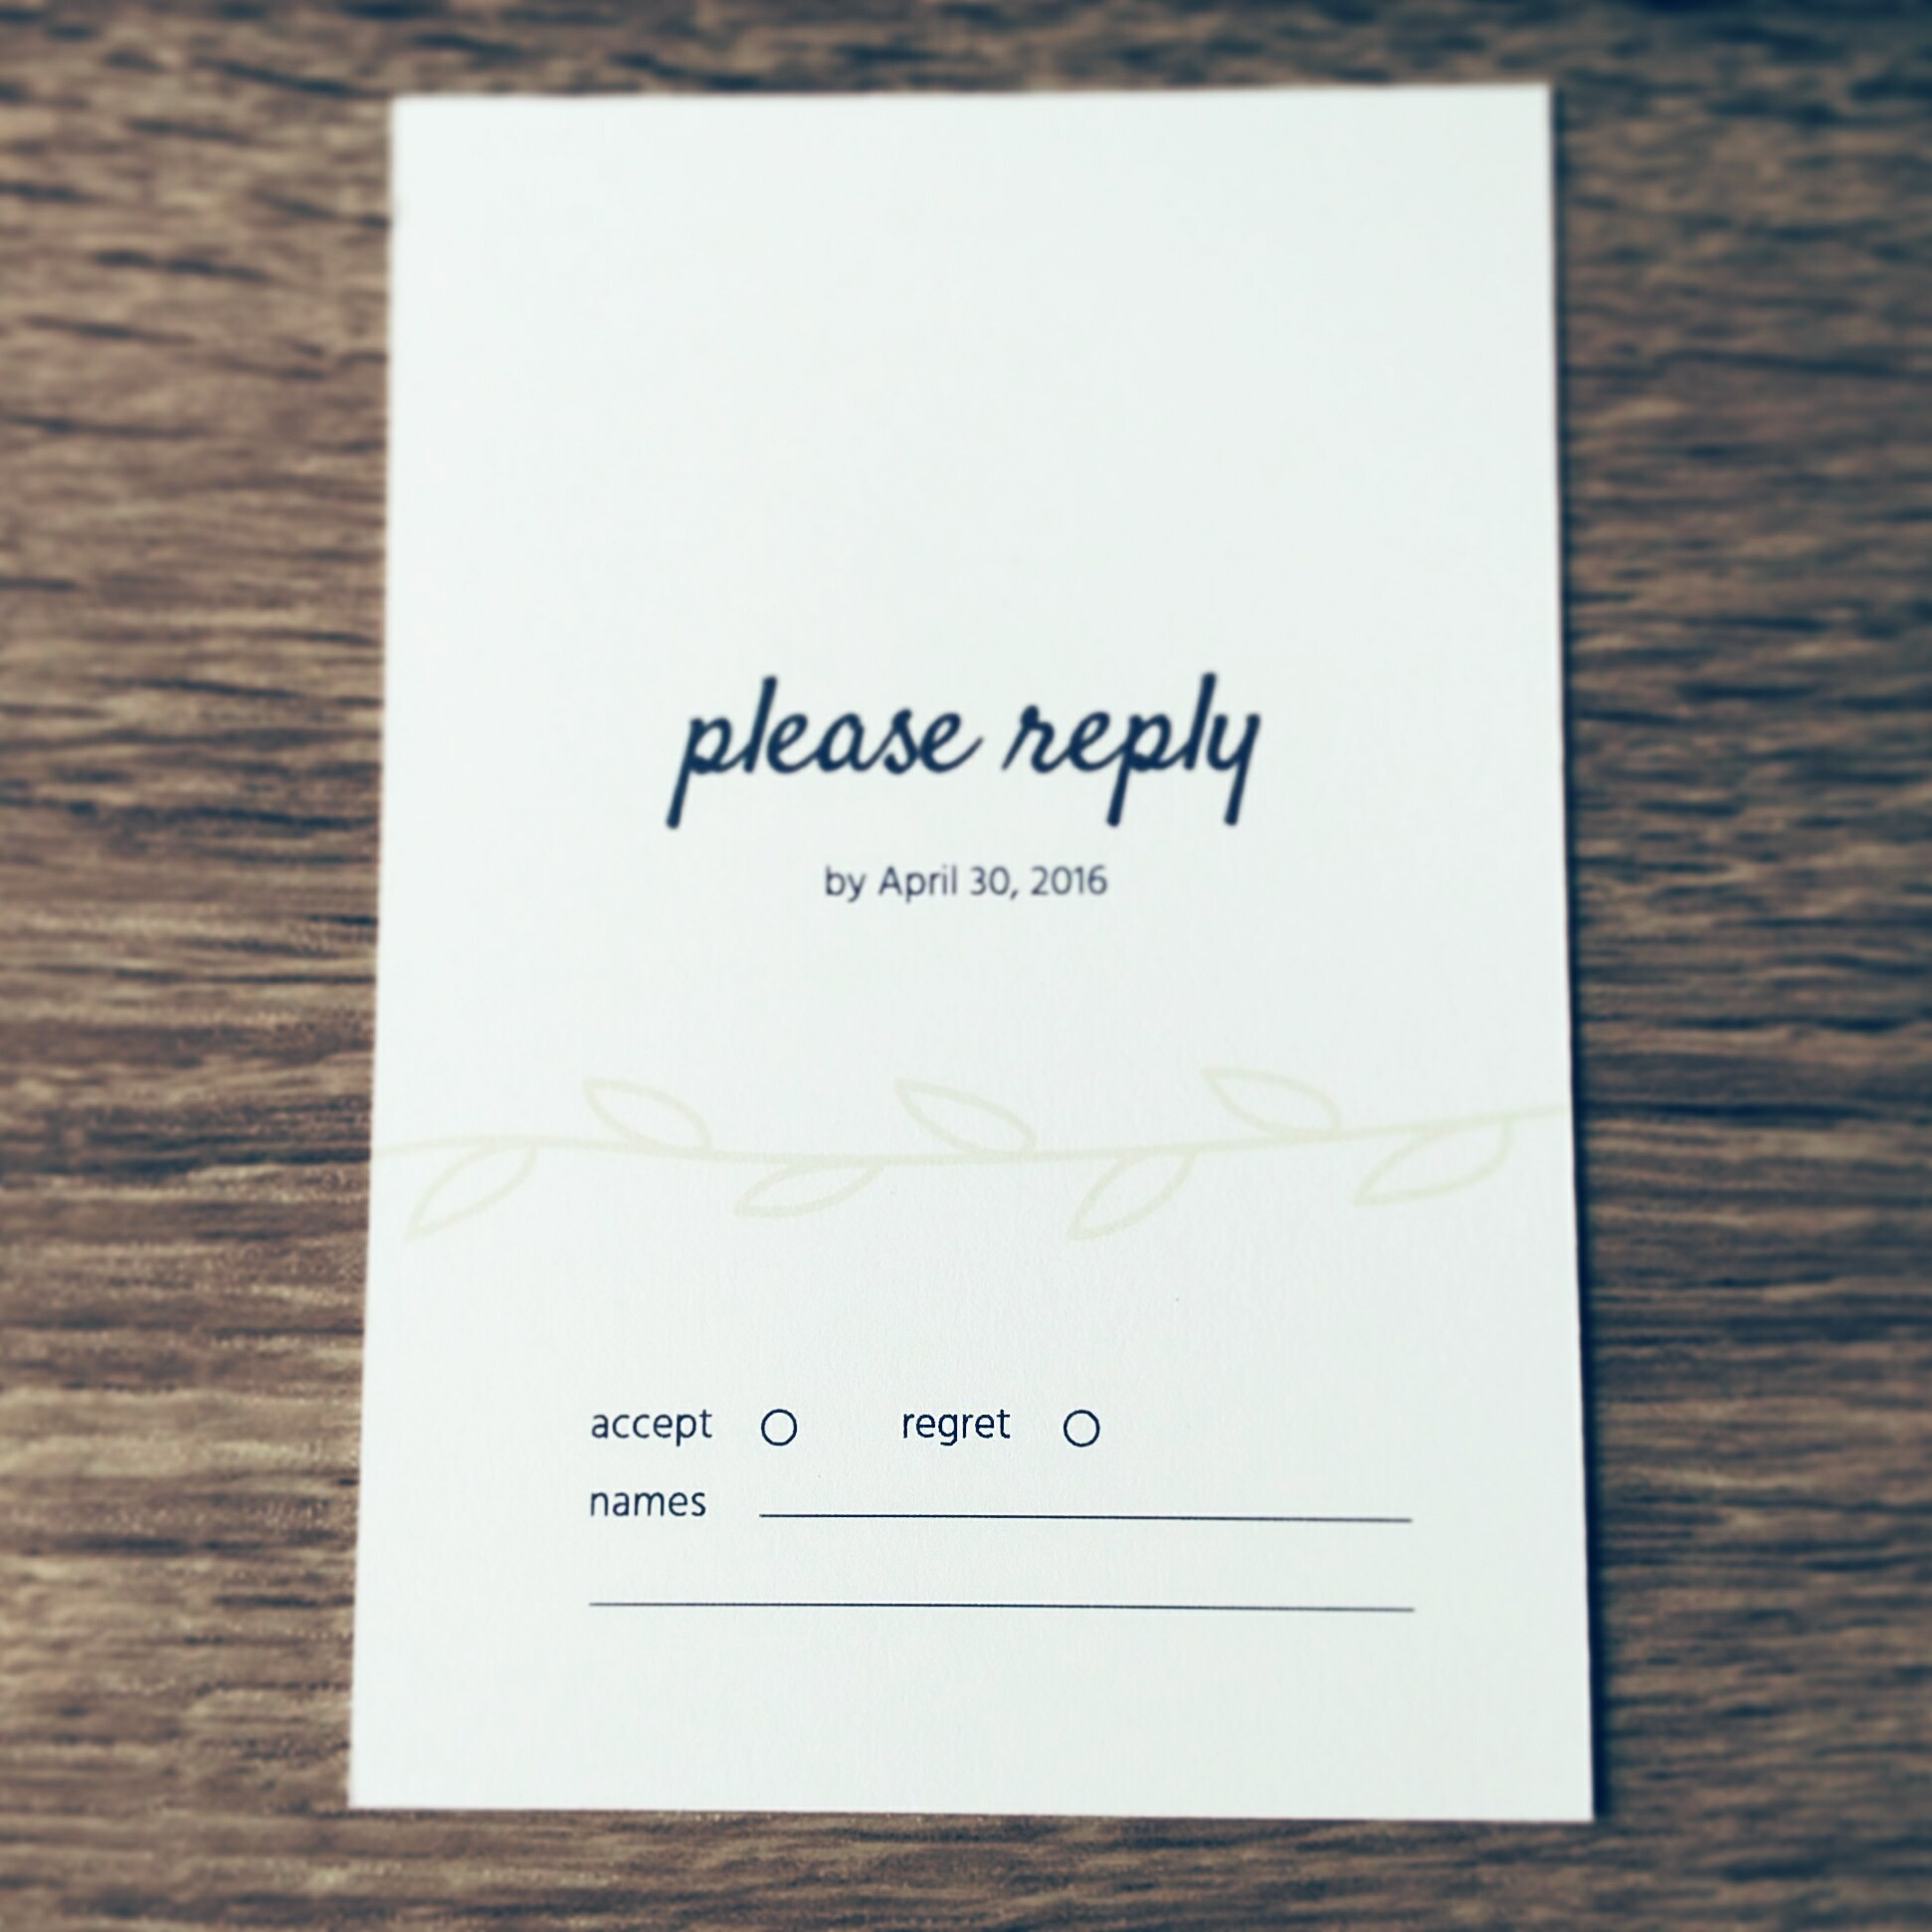 Easy to fill out RSVP card